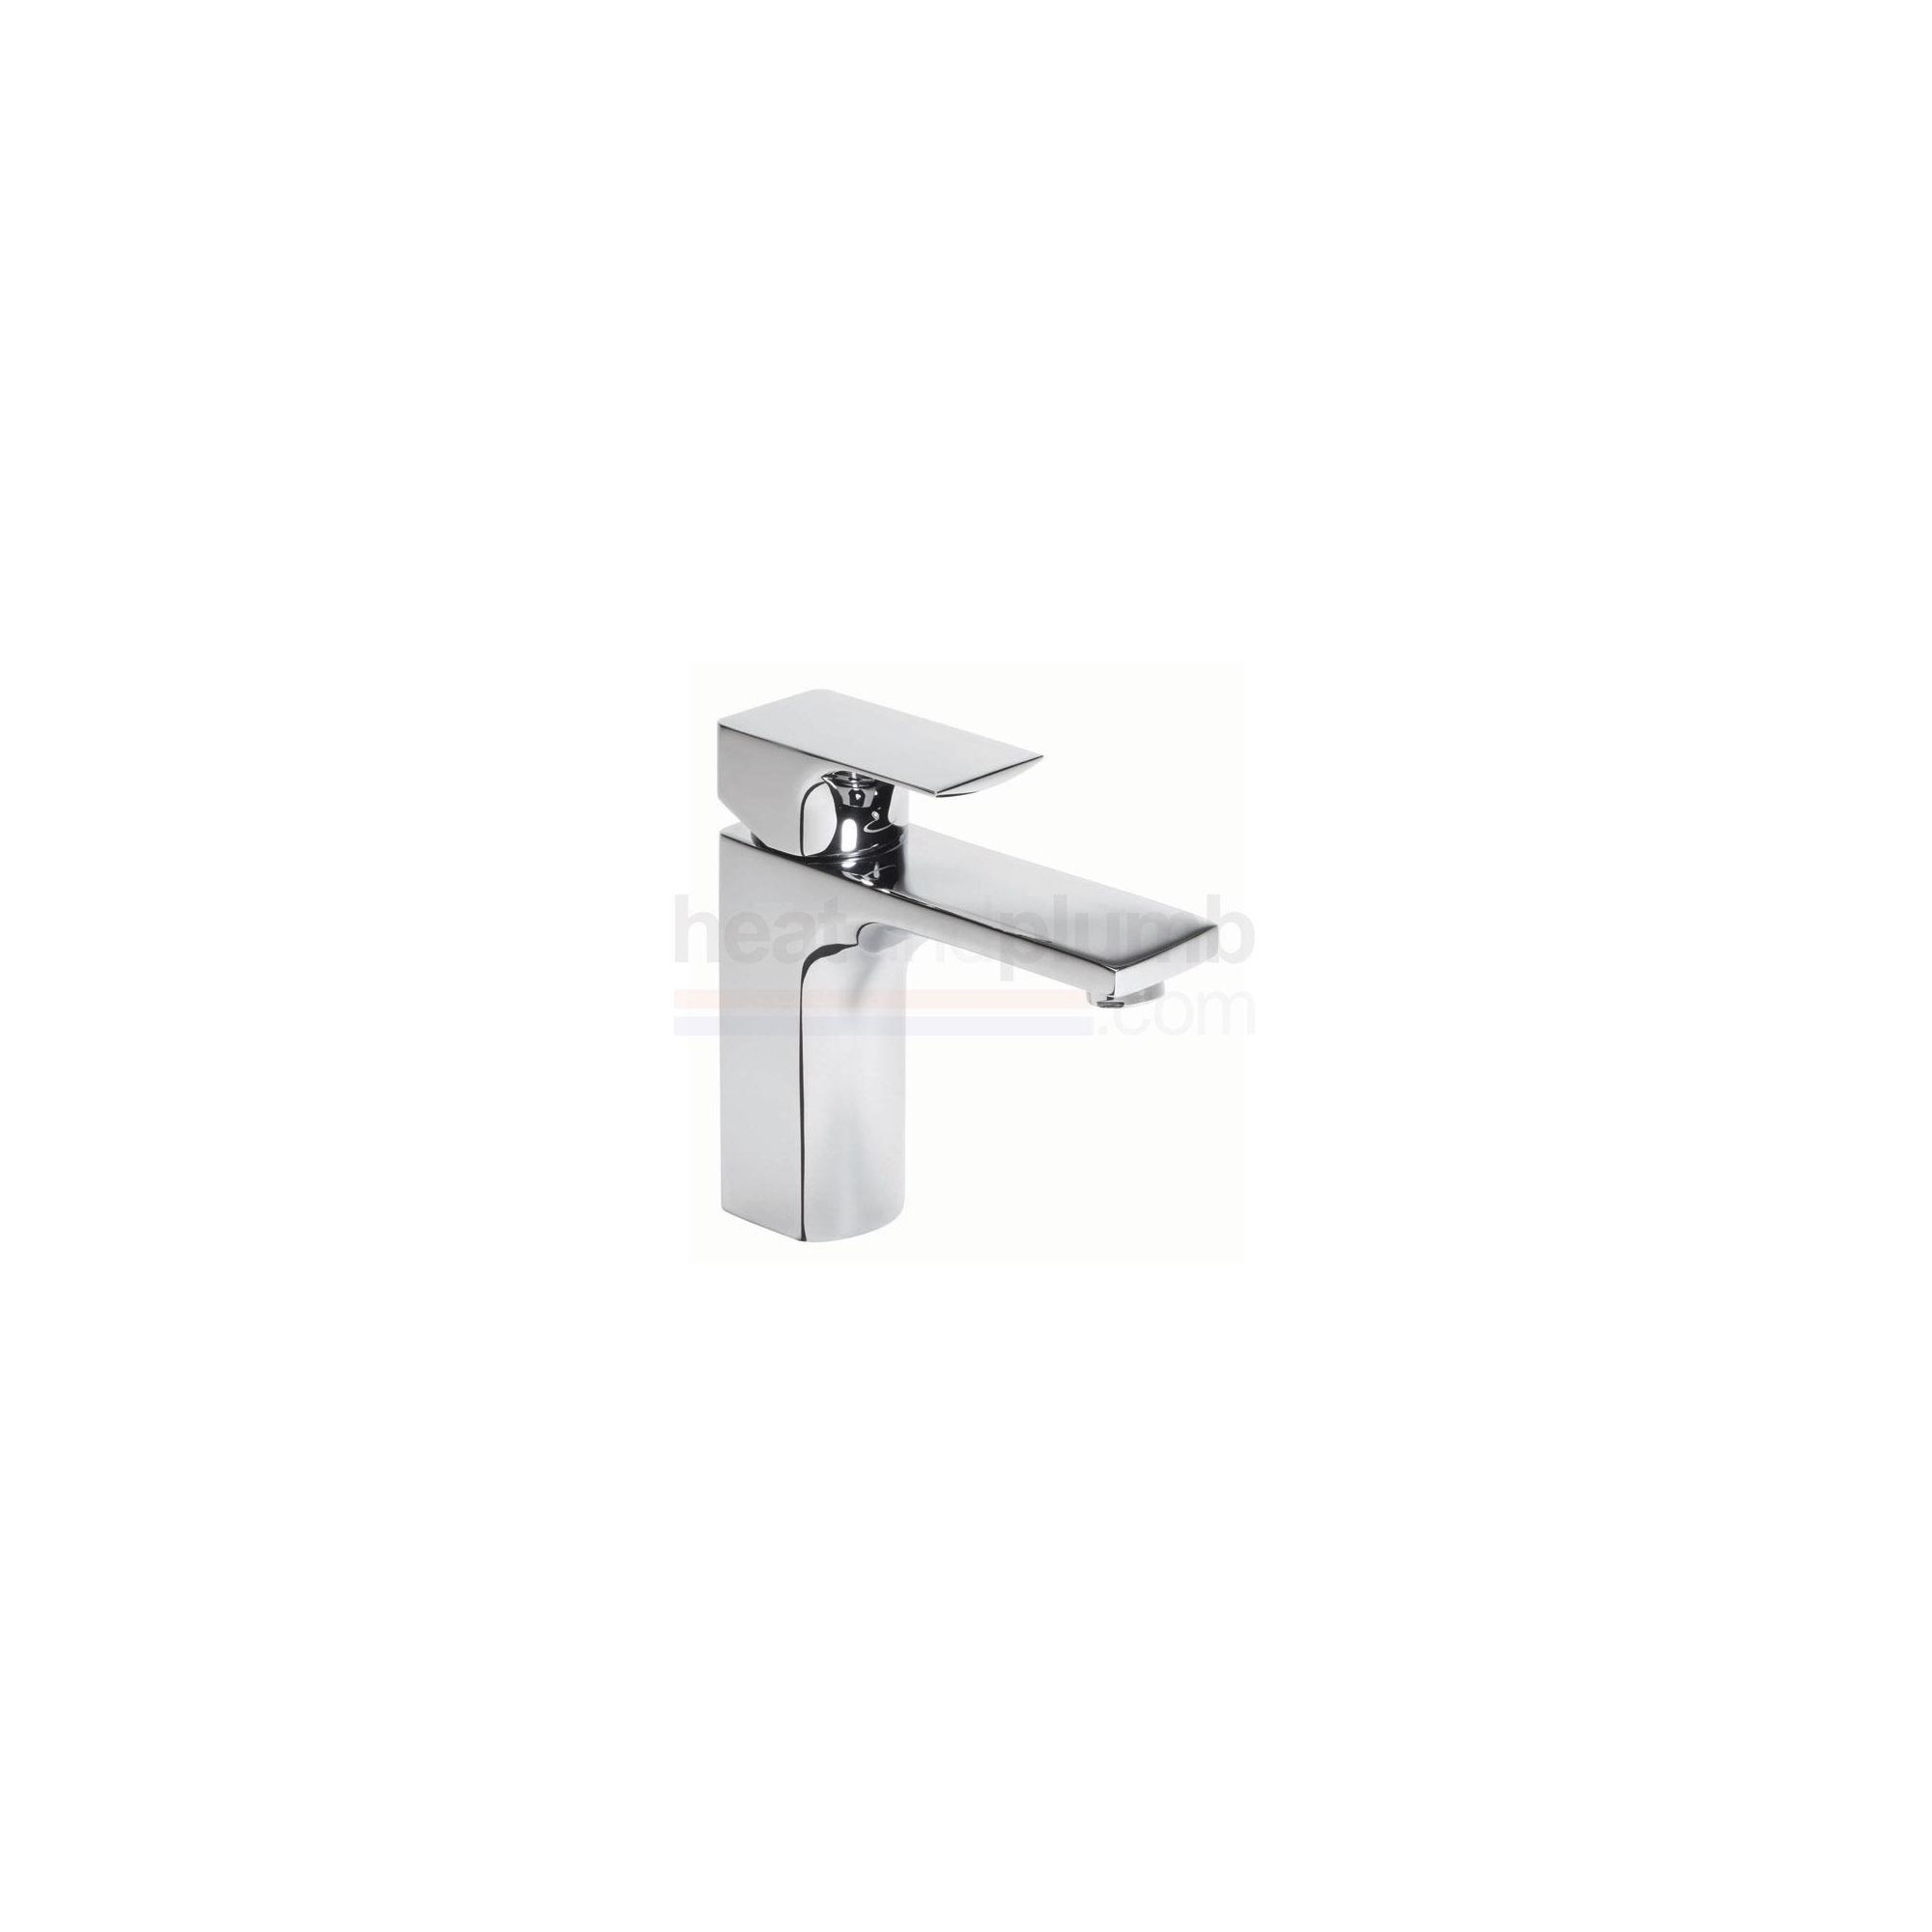 Tavistock Siren Single Lever Mono Basin Mixer Tap With Click Waste